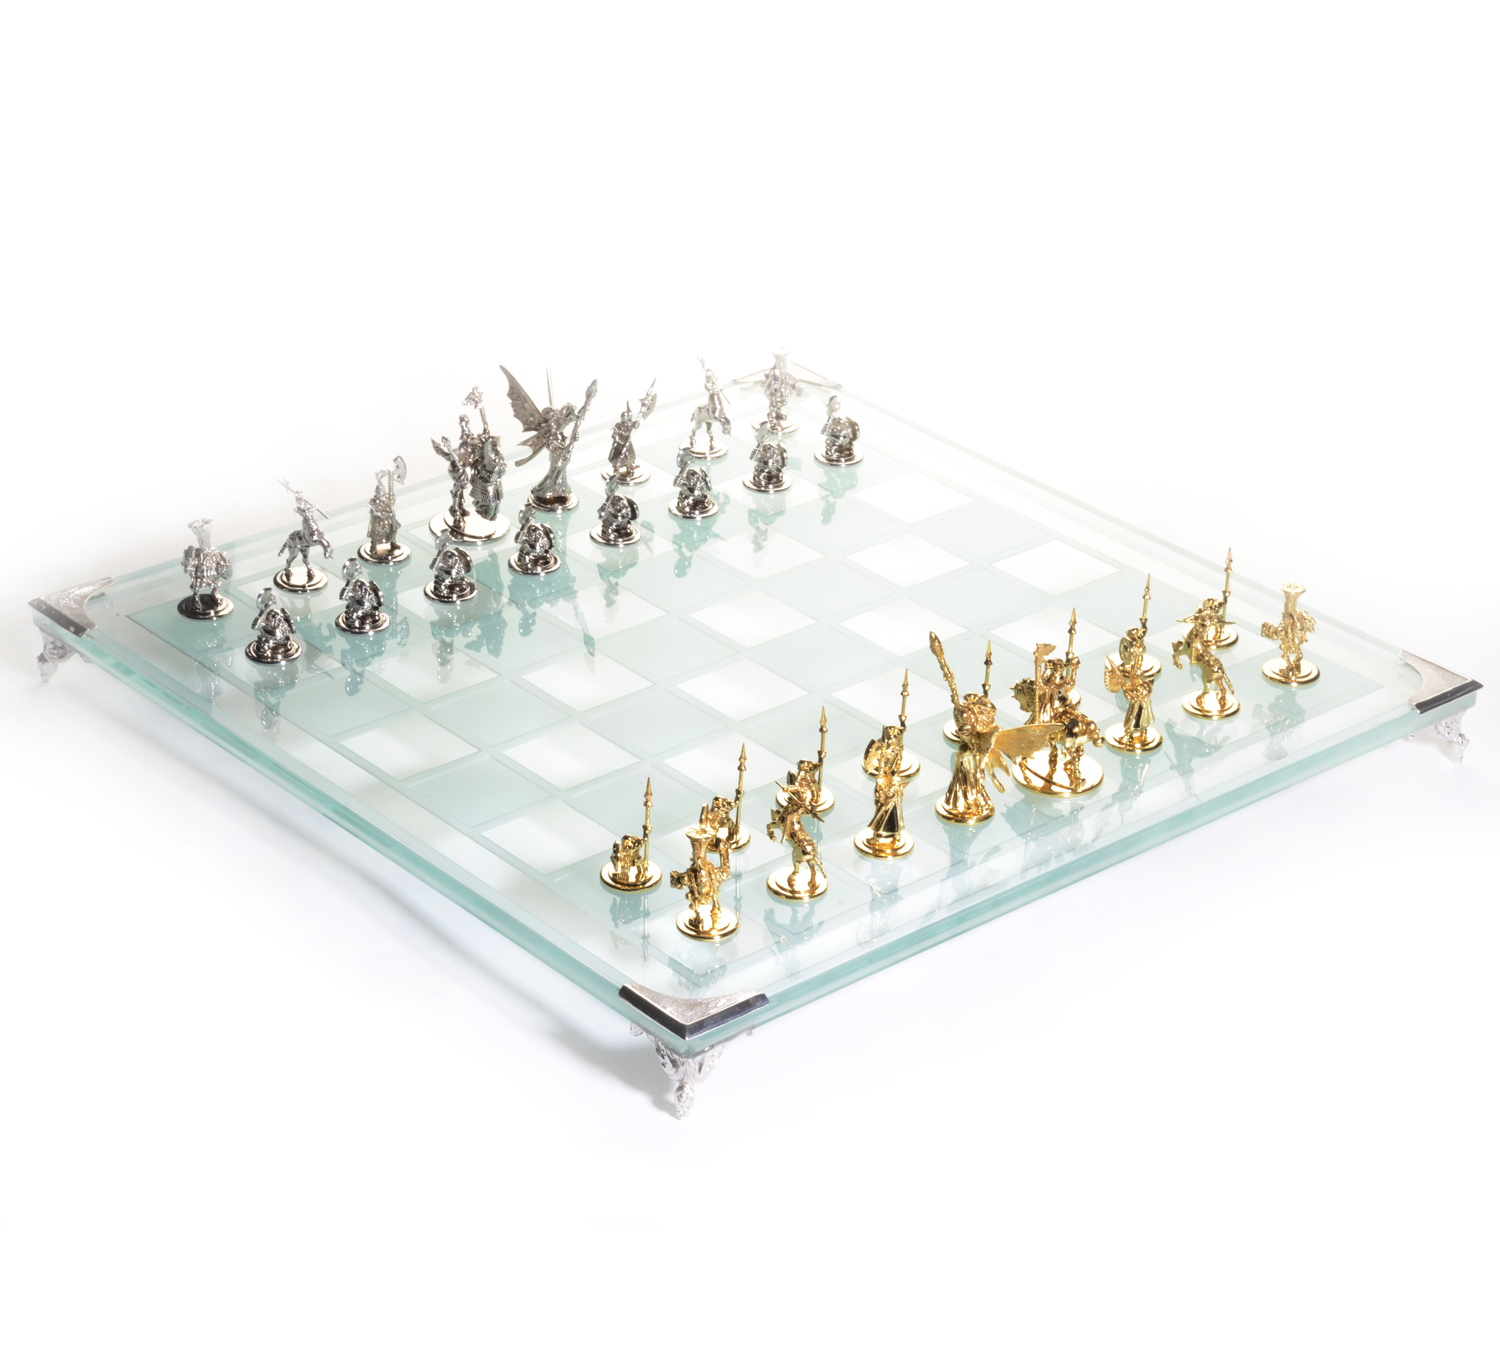 14K White & Yellow Gold Tempered Glass Chess Set